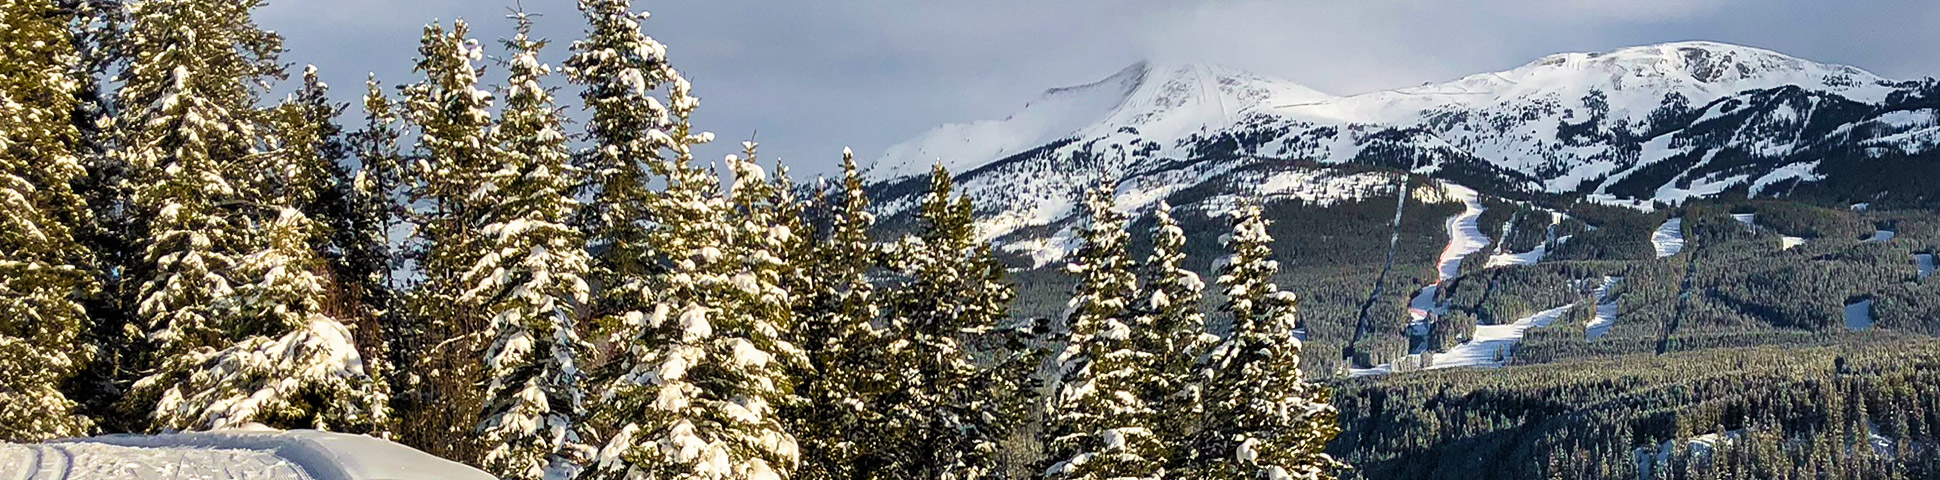 Panorama of Chateau to Village on Tramline and Bow River XC ski trail in Banff National Park, Alberta